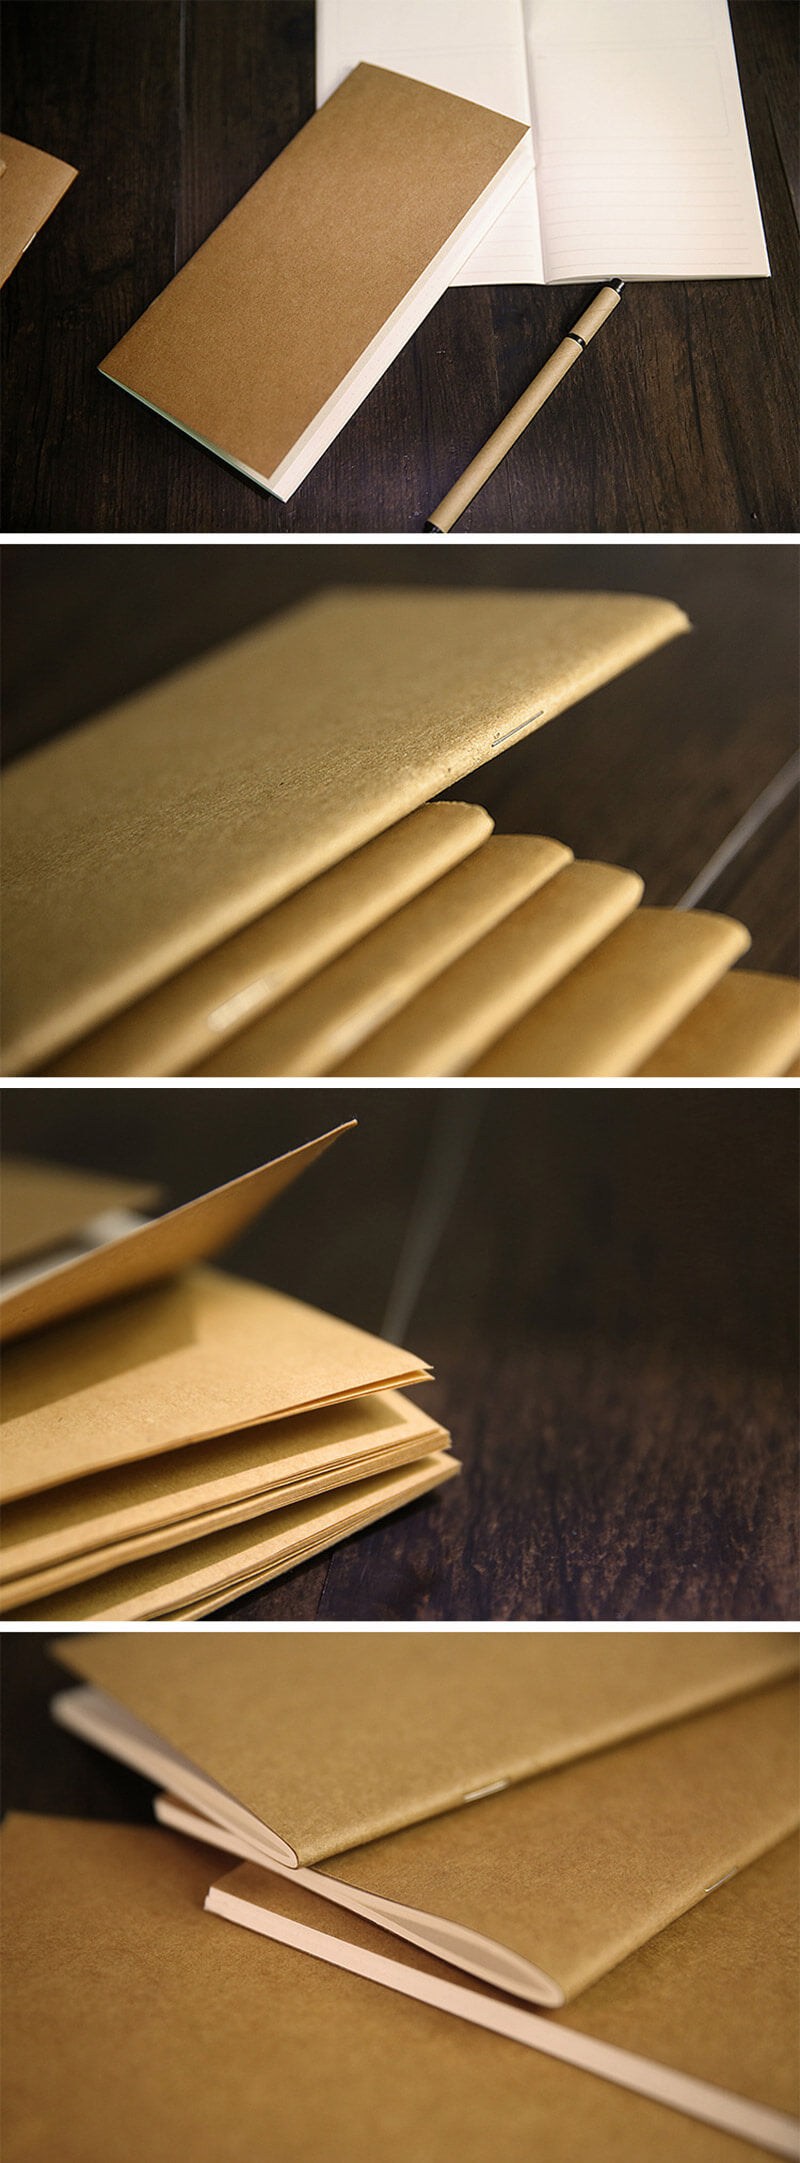 Kraft Paper Travel Planner Notebook Dotted Lined Grid Blank - Detail